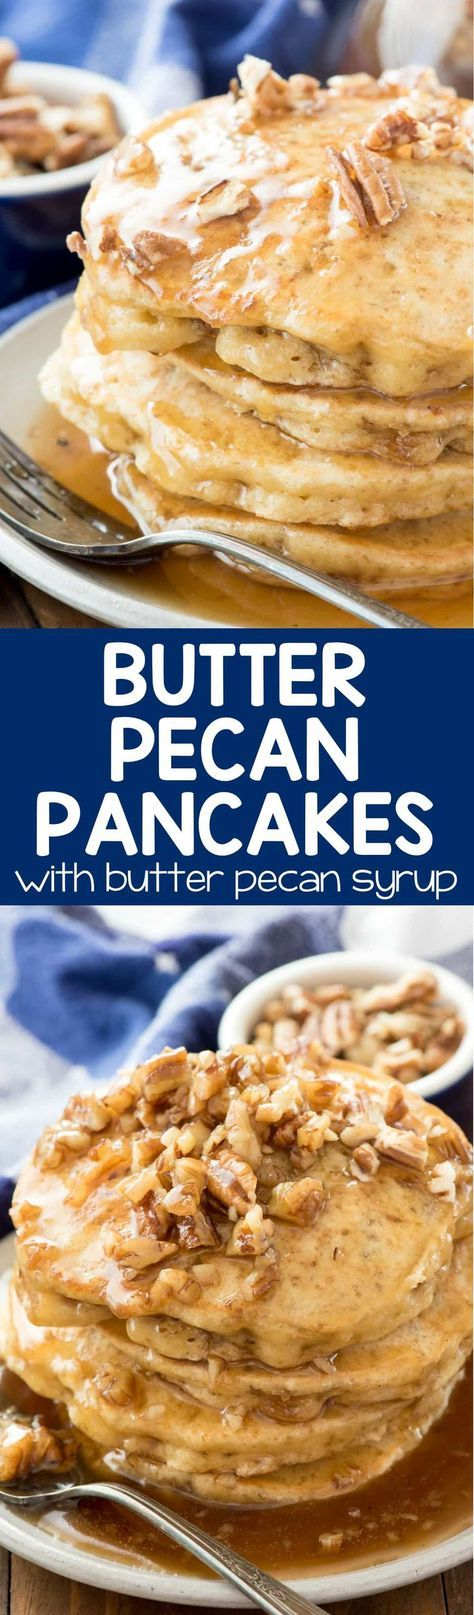 Butter Pecan Pancakes - this easy recipe is the BEST PANCAKE RECIPE EVER. The flavor tastes just like butter pecan ice cream, especially with the butter pecan syrup!